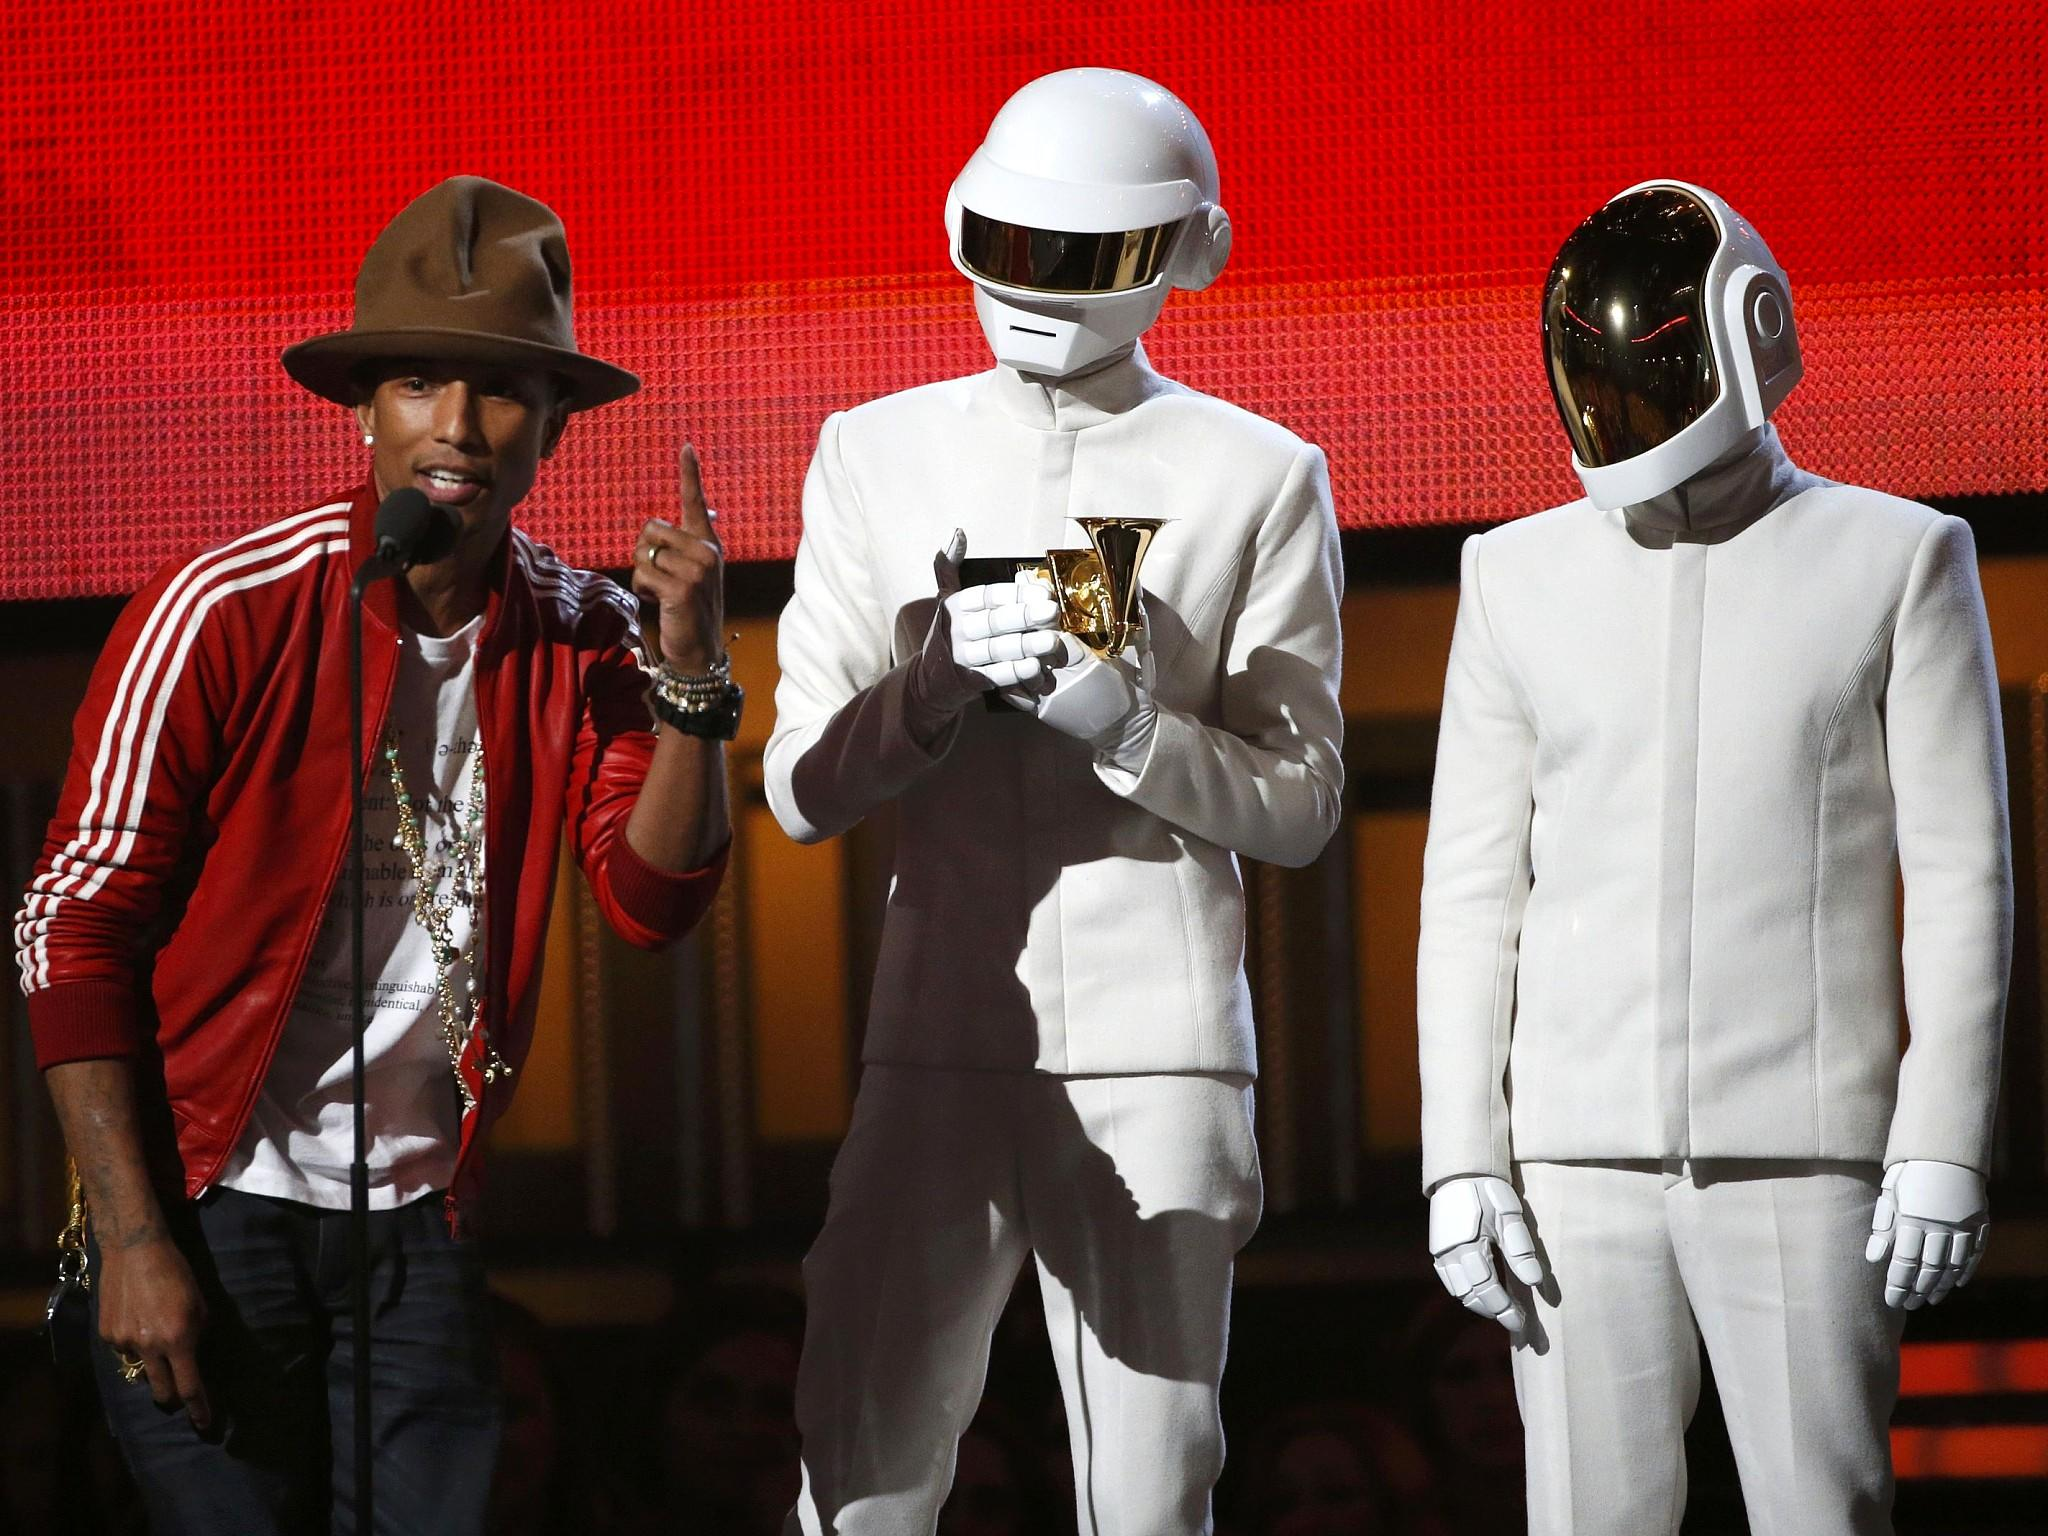 Grammy Awards 2014: Die Gewinner